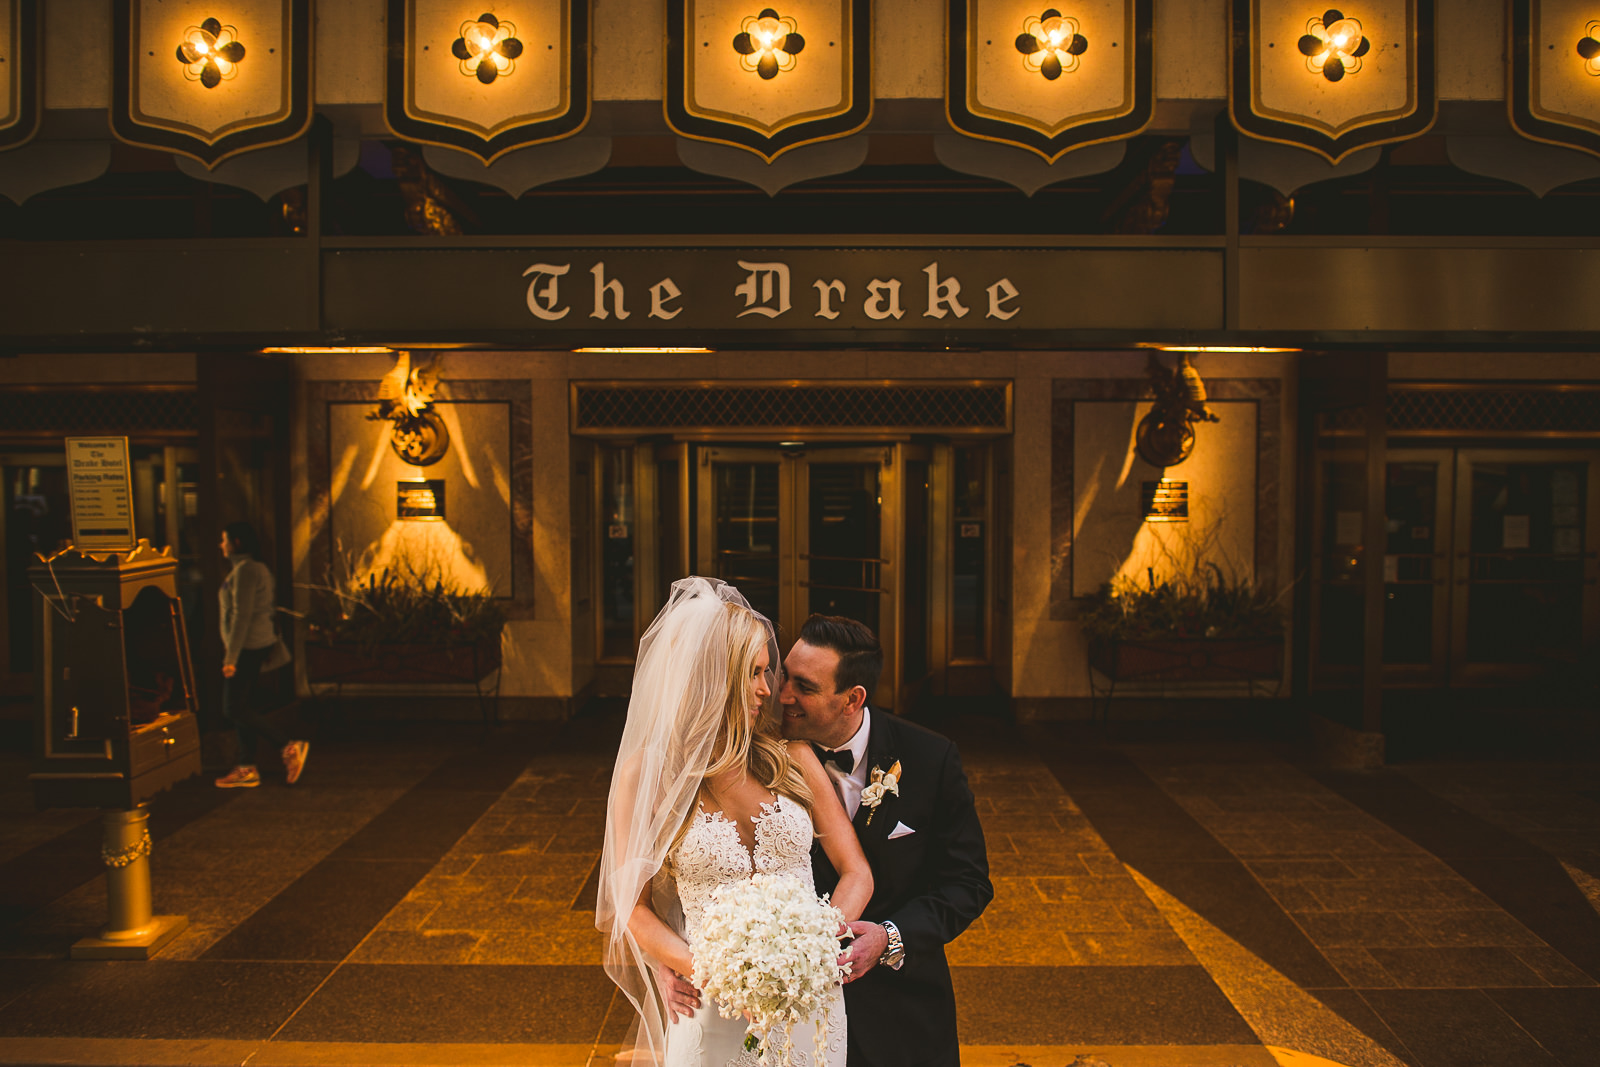 42 wedding photos in the front of drake hotel chicago - Kayla + Terry // Drake Hotel Chicago Wedding Photos